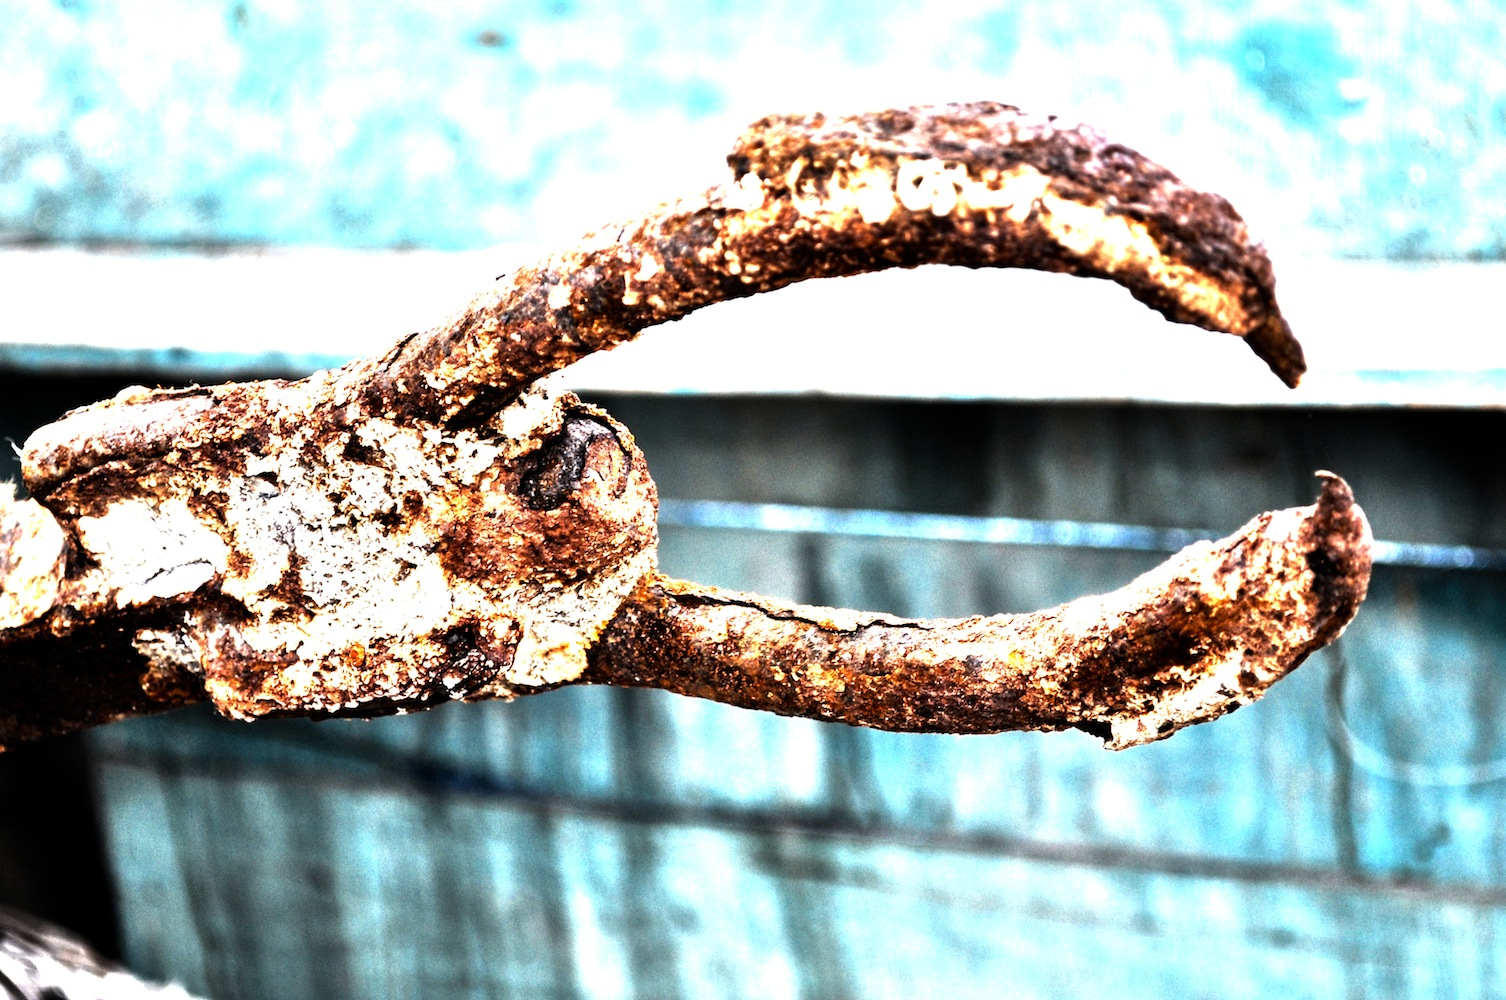 How Did the Anchor Become so Rusty by Rabirius